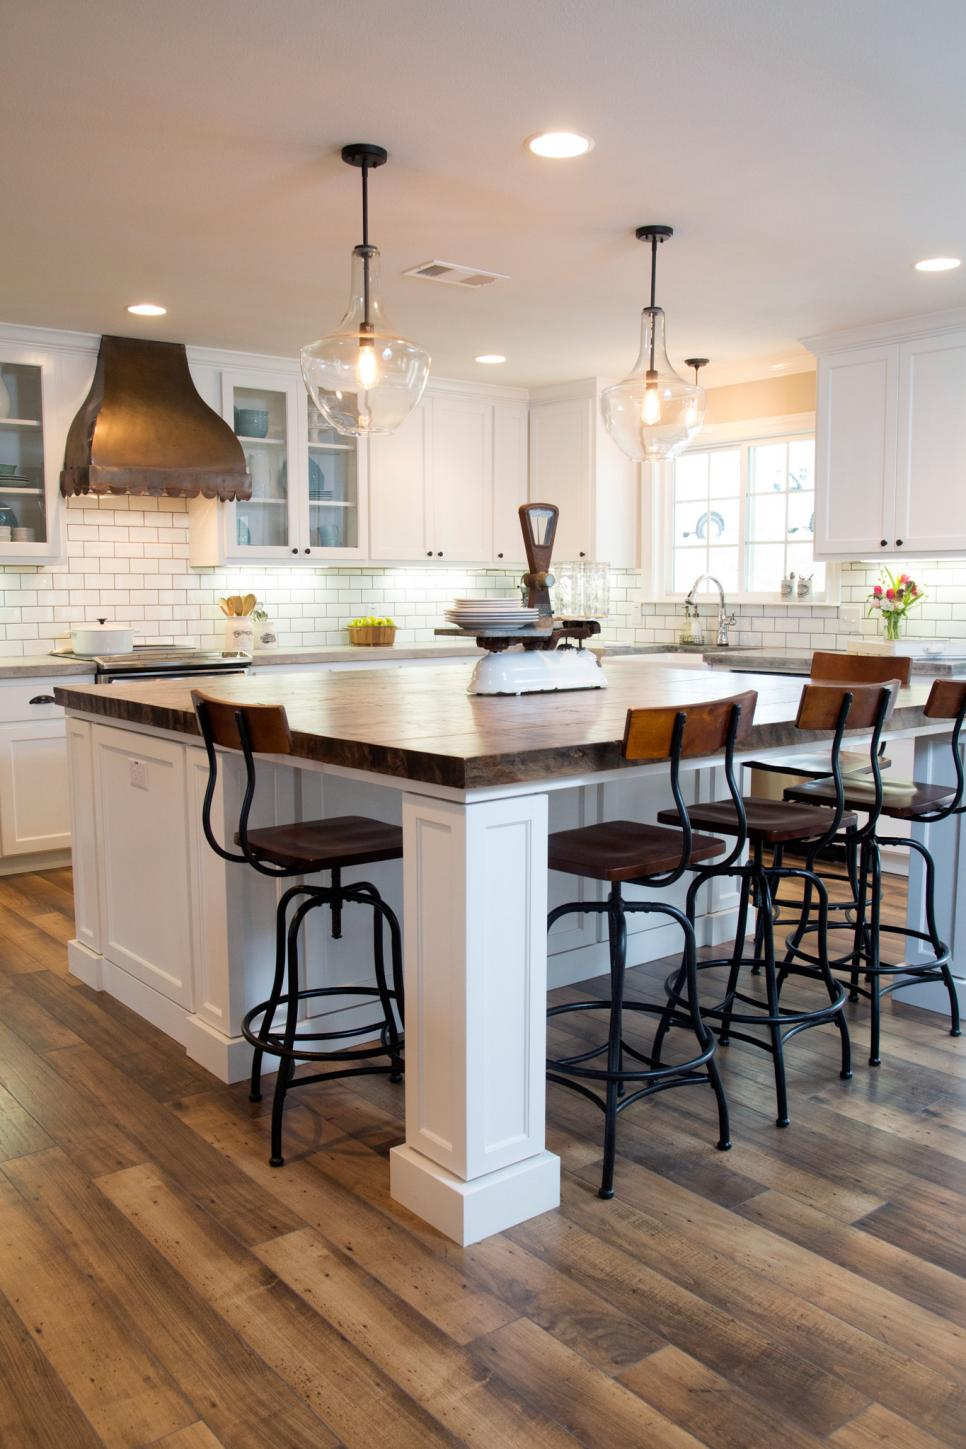 Kitchen Island 50 50 inspiring kitchen island ideas & designs (pictures) - homelovr